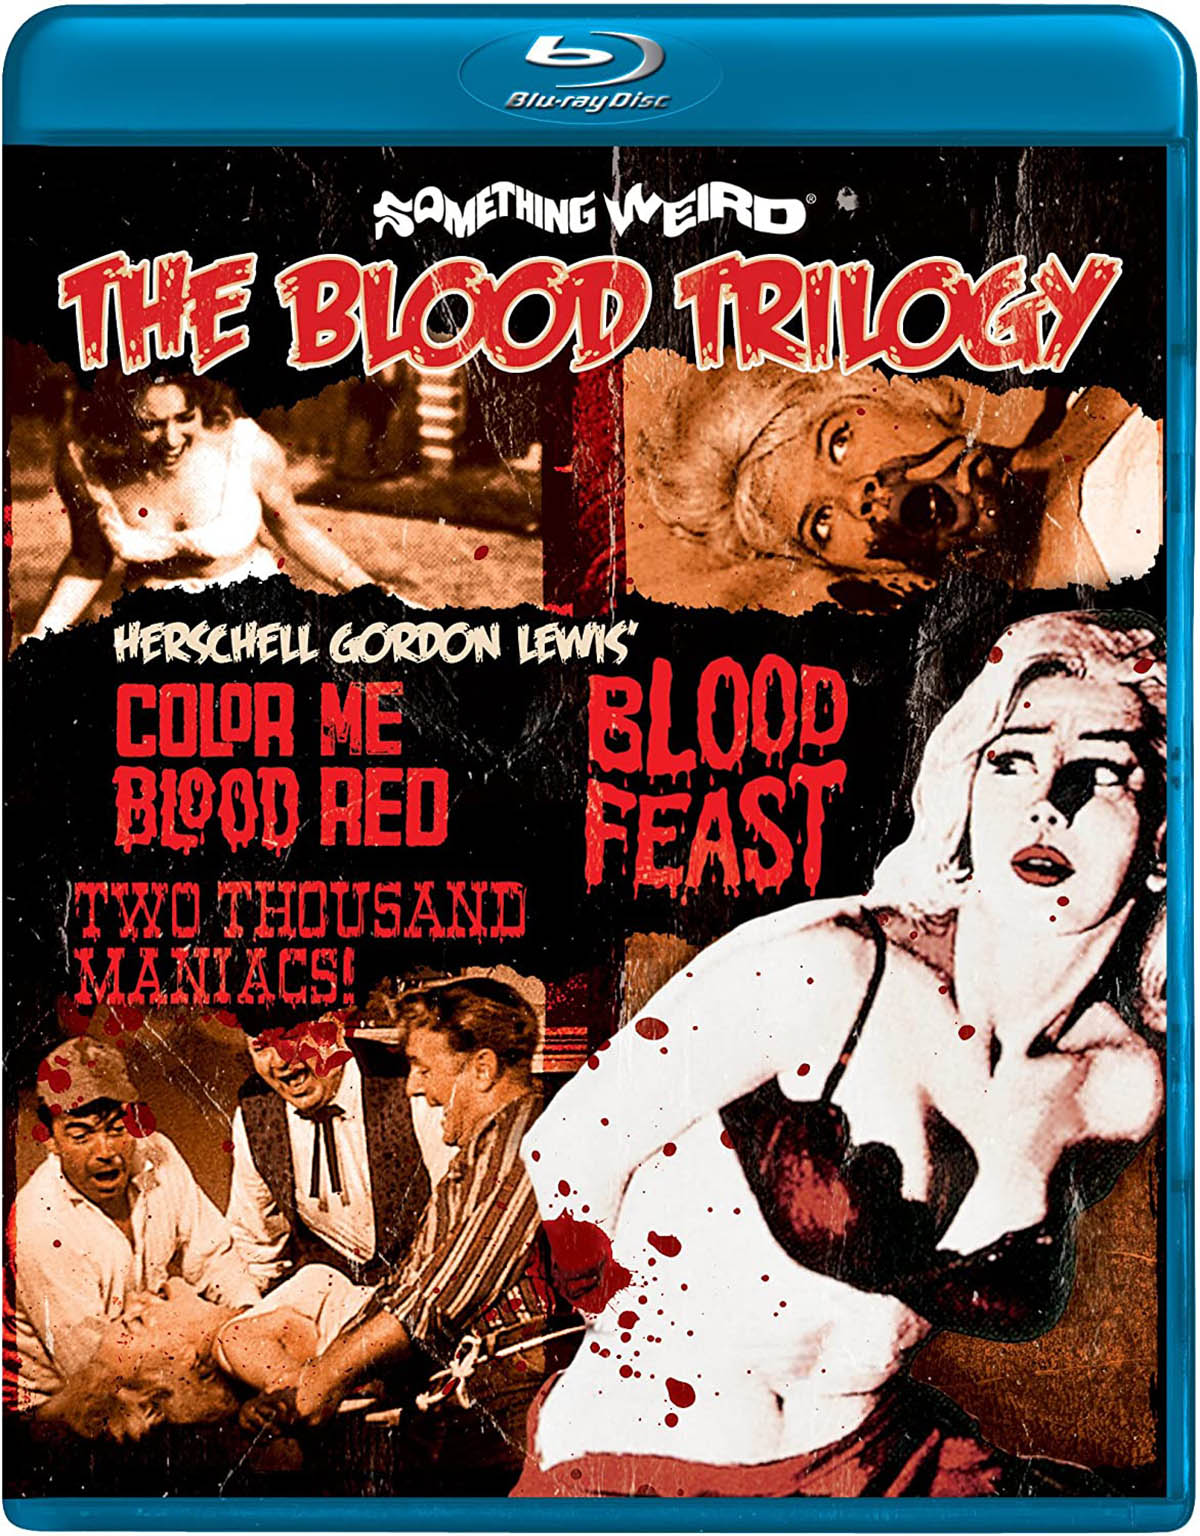 Blu-ray Review: The Blood Trilogy - Slant Magazine